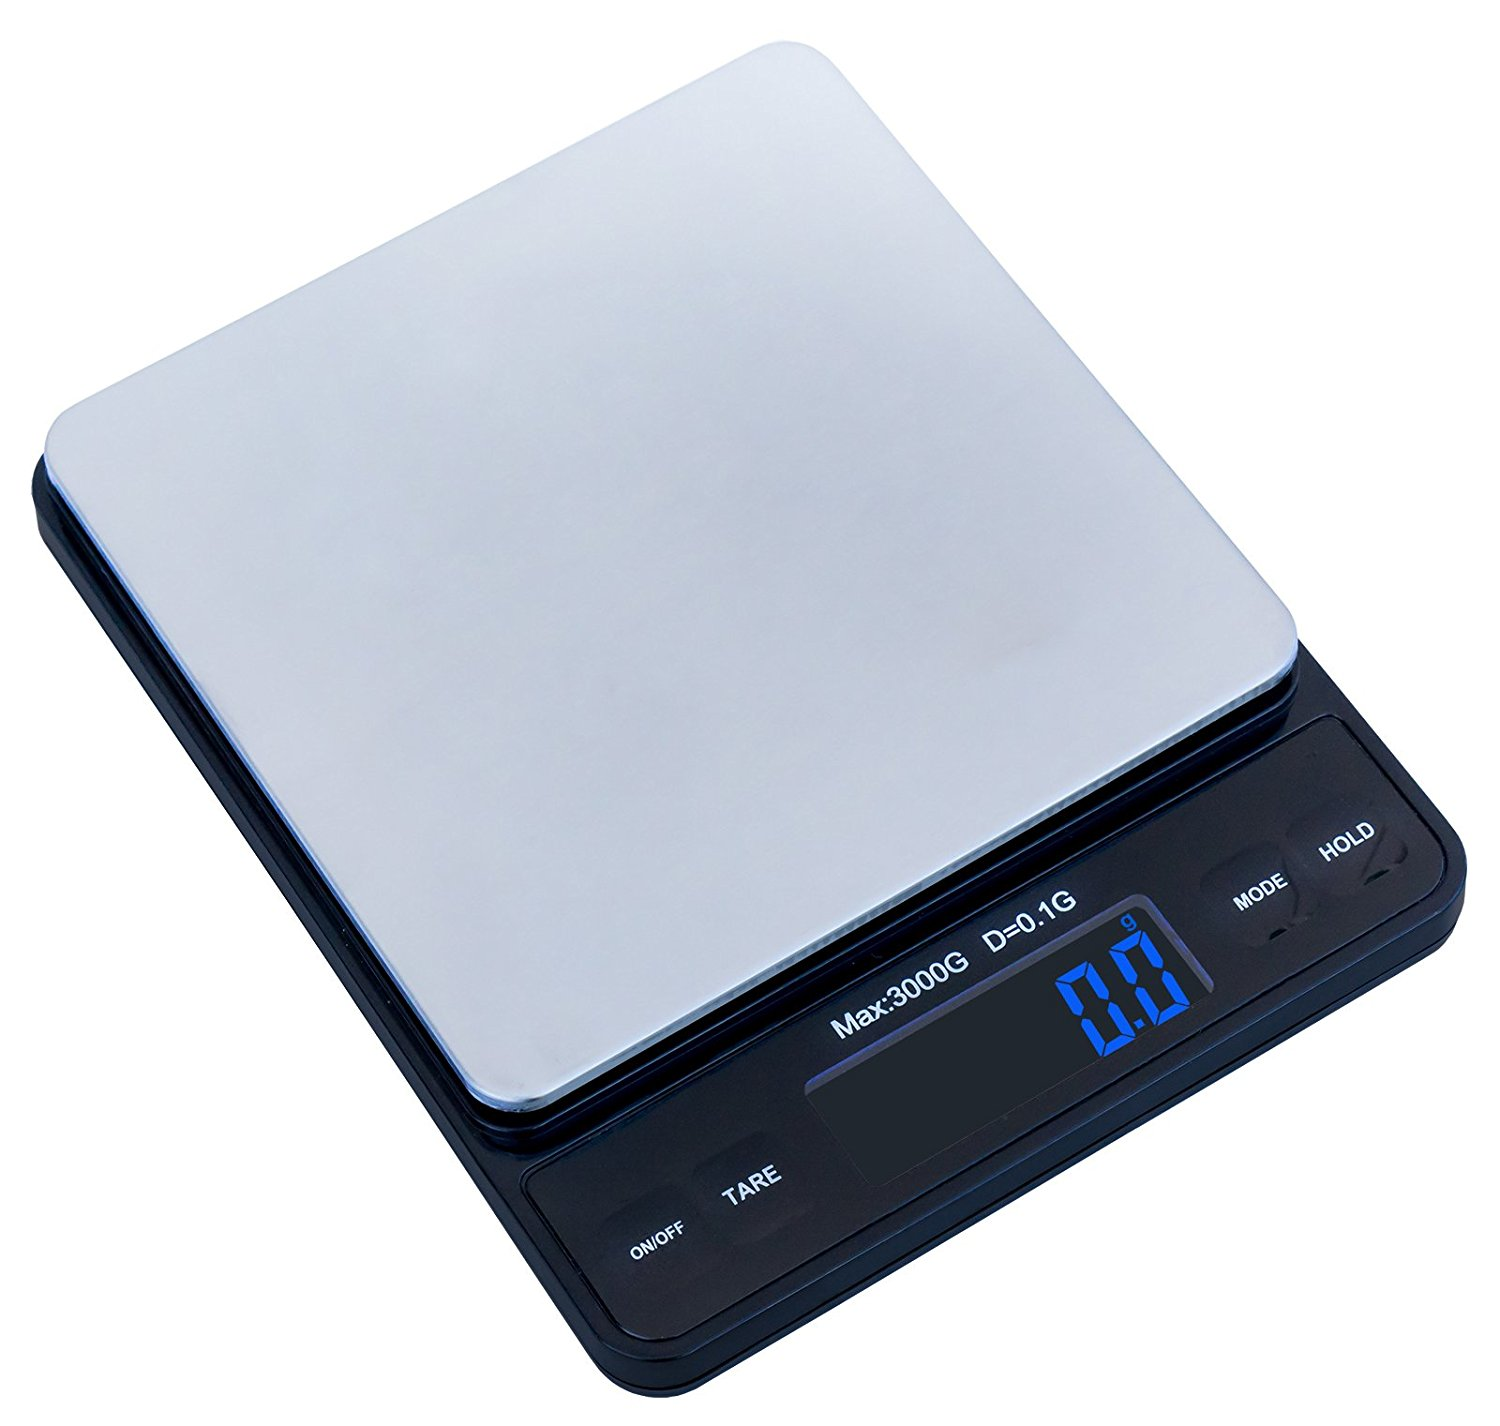 Weighmax Duo Series W 7800 High Precision 0 1g 01oz 3000g Digital Pro Pocket Scale Serving As Kitchen And Postal